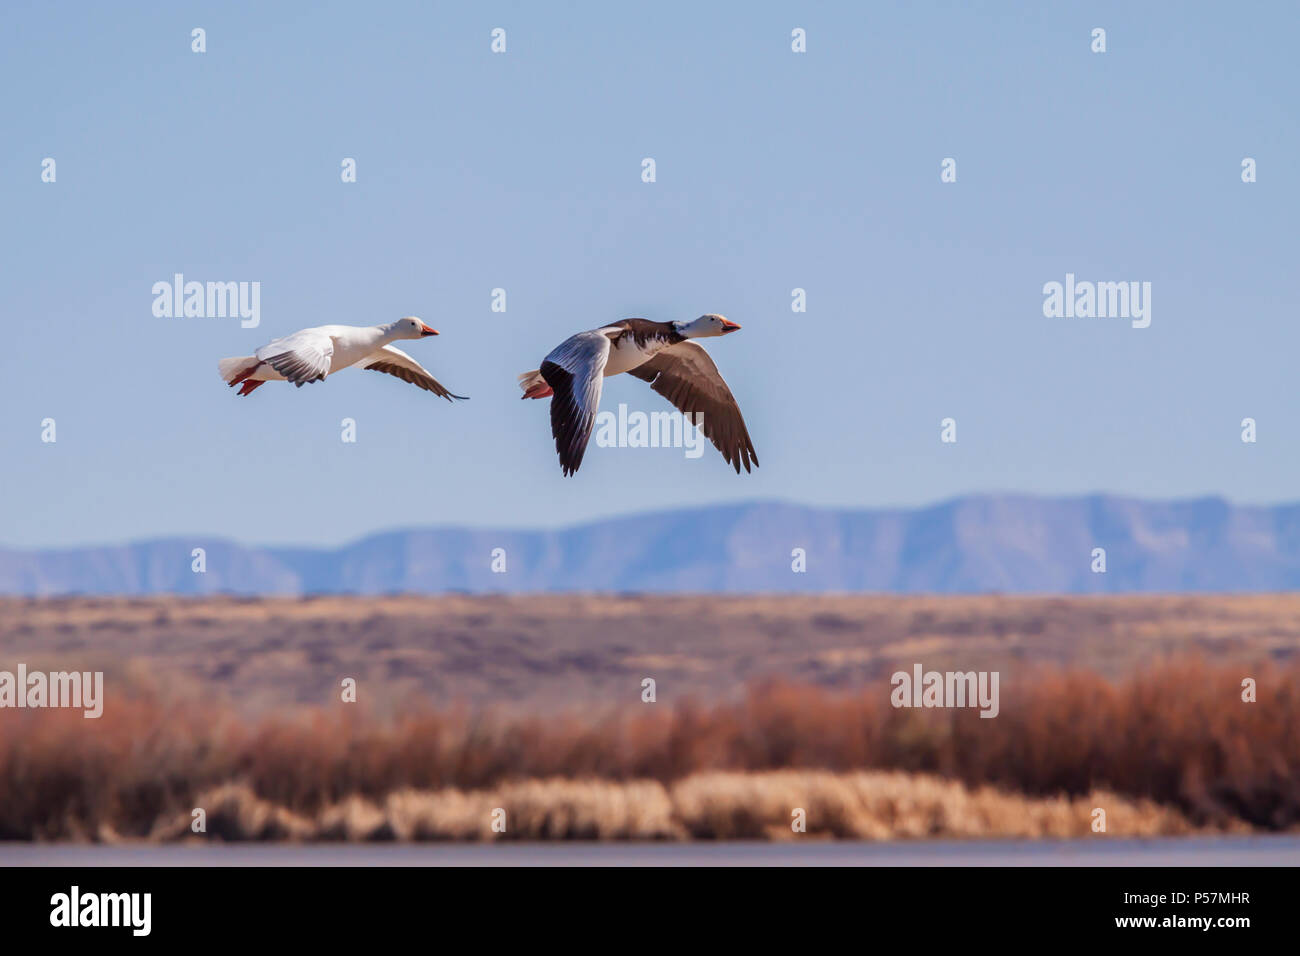 Snow Geese, Chen caerulescens, at Bosque del Apache National Wildlife Refuge in New Mexico. Stock Photo